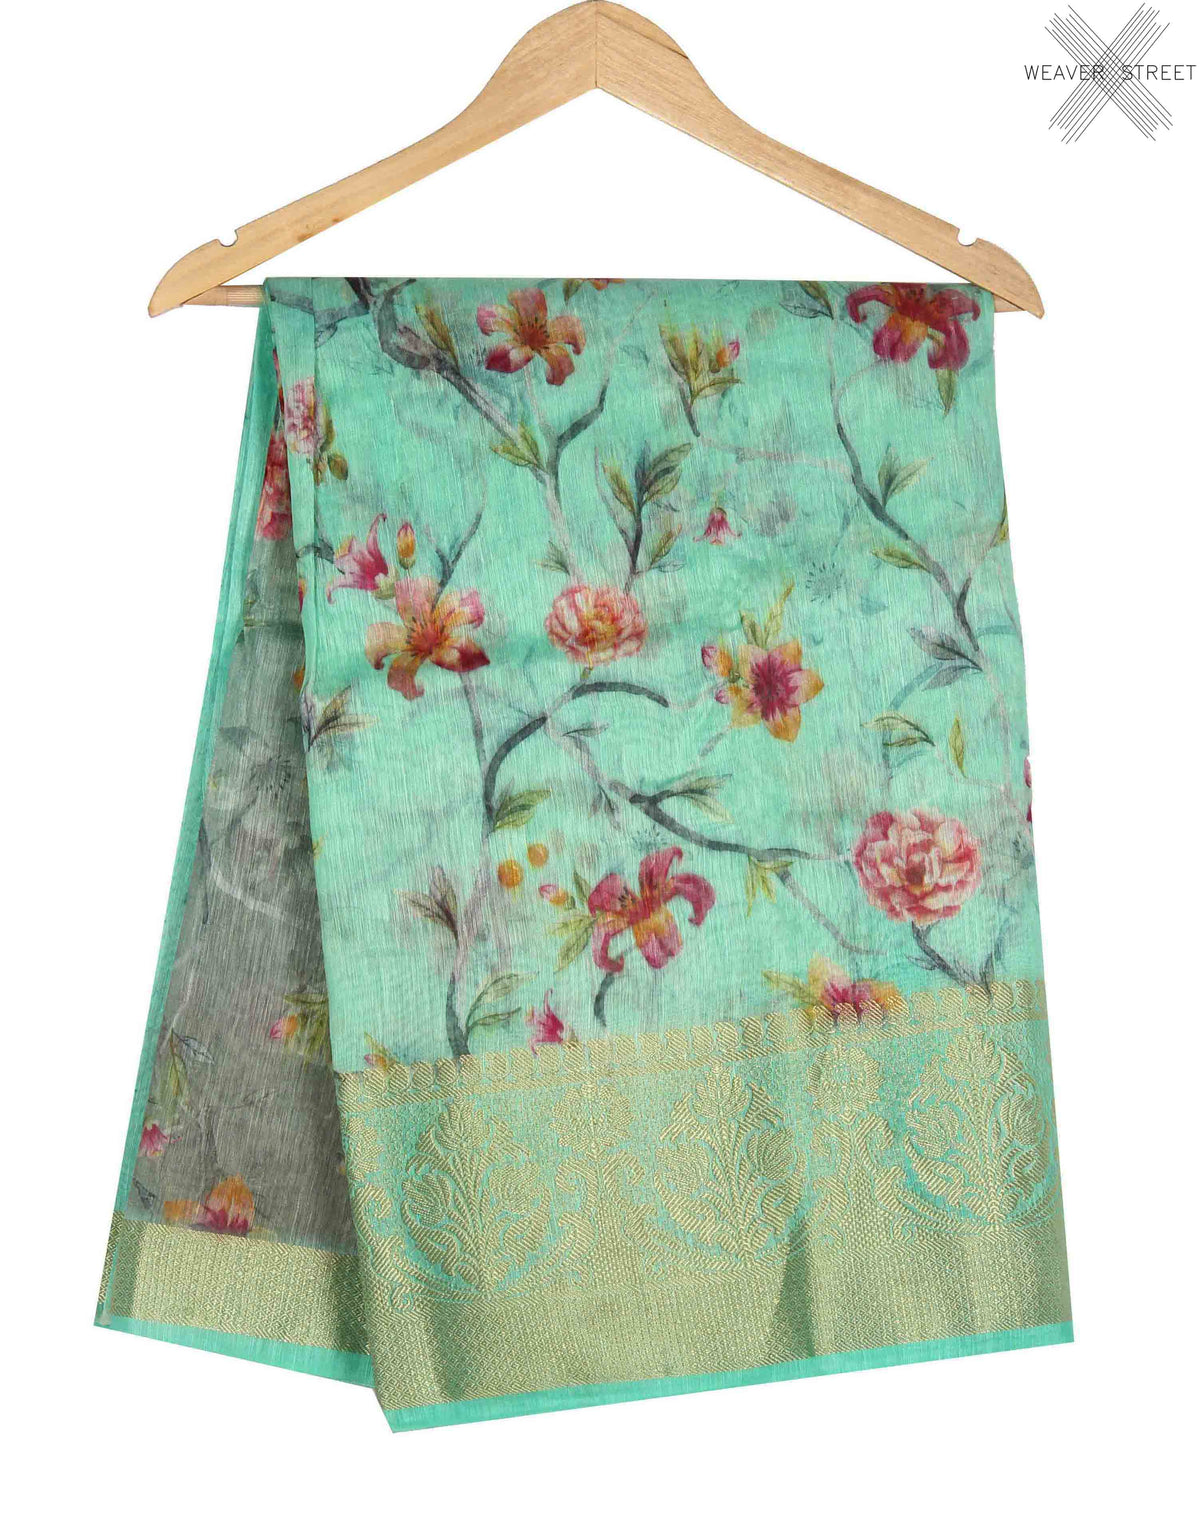 Sea Green Silk Linen Banarasi saree with shaded Floral prints (1) main